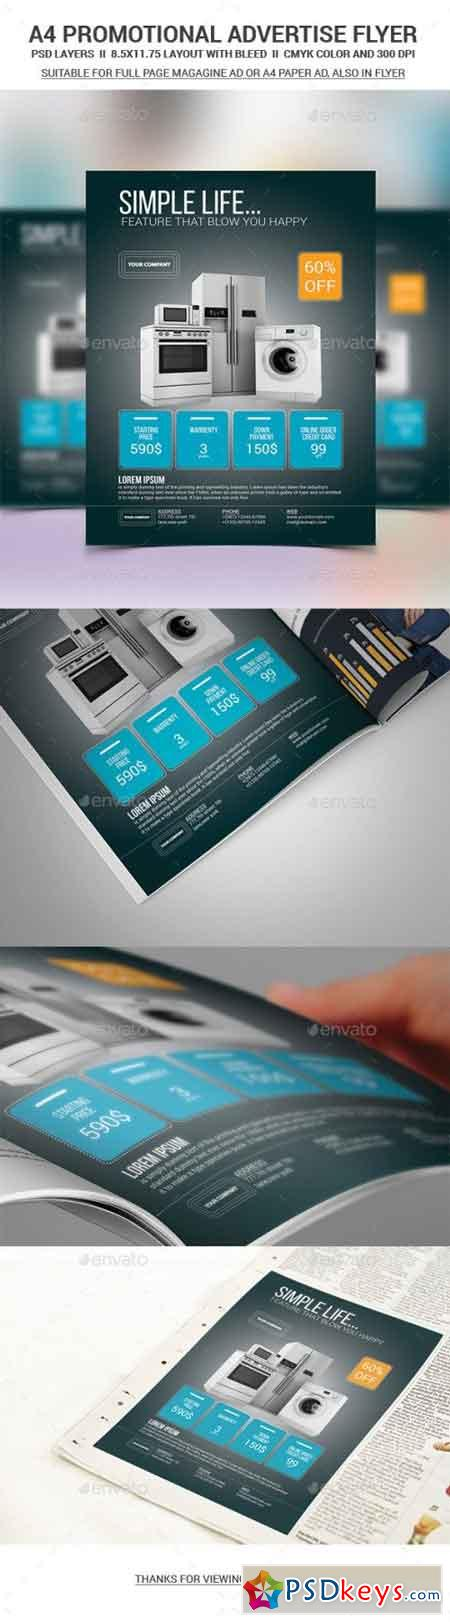 Product Promo Flyer Template 11562493